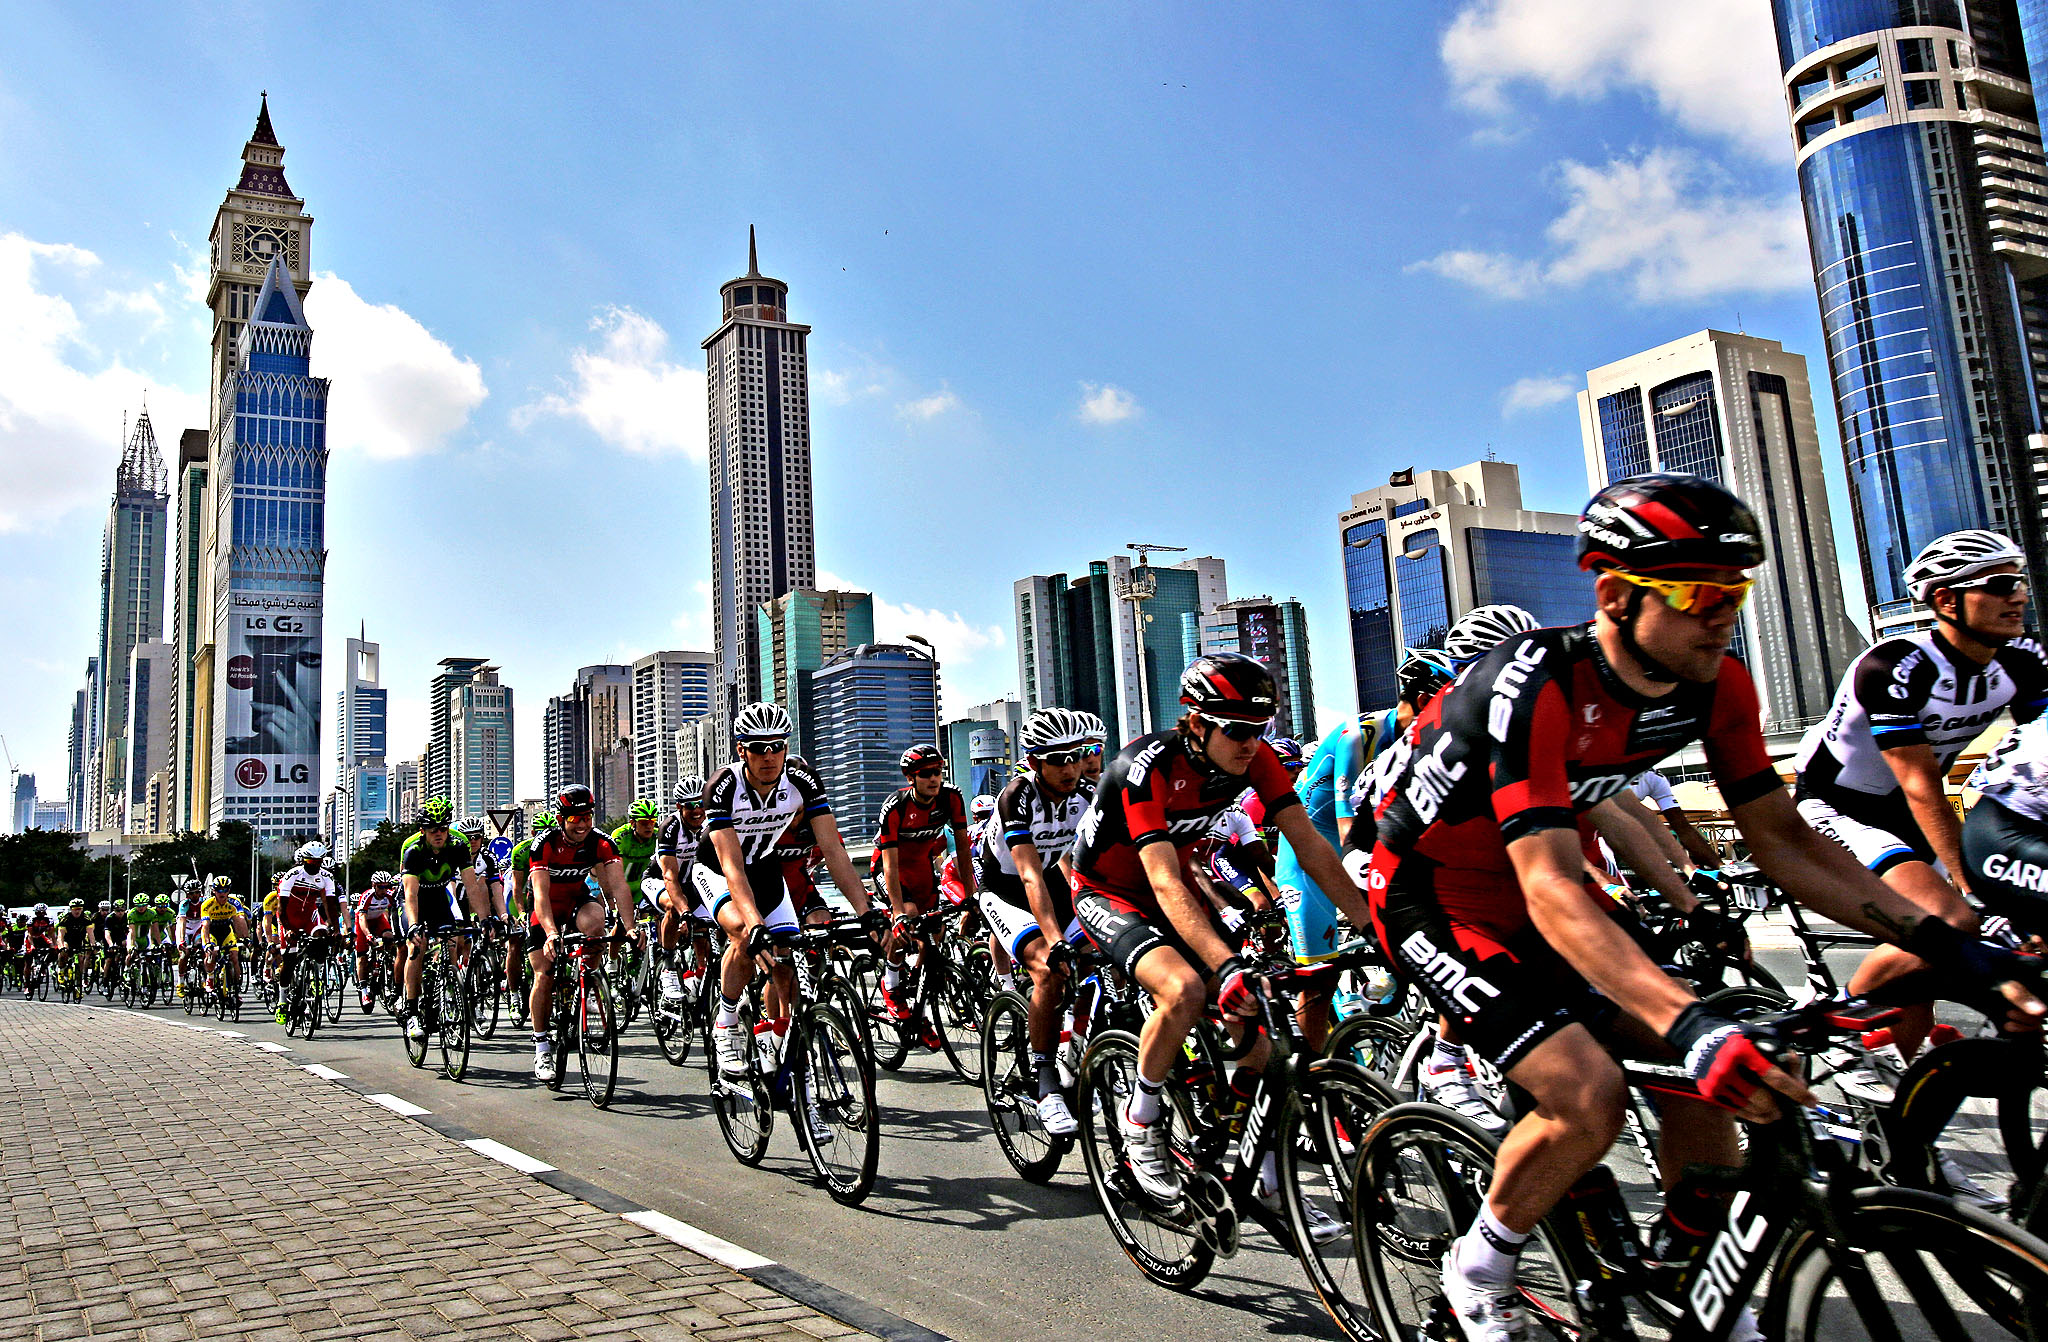 Cyclists start the Sport Stage of the 2nd day of Dubai Tour in Dubai, United Arab Emirates, Thursday, Feb. 6, 2014.